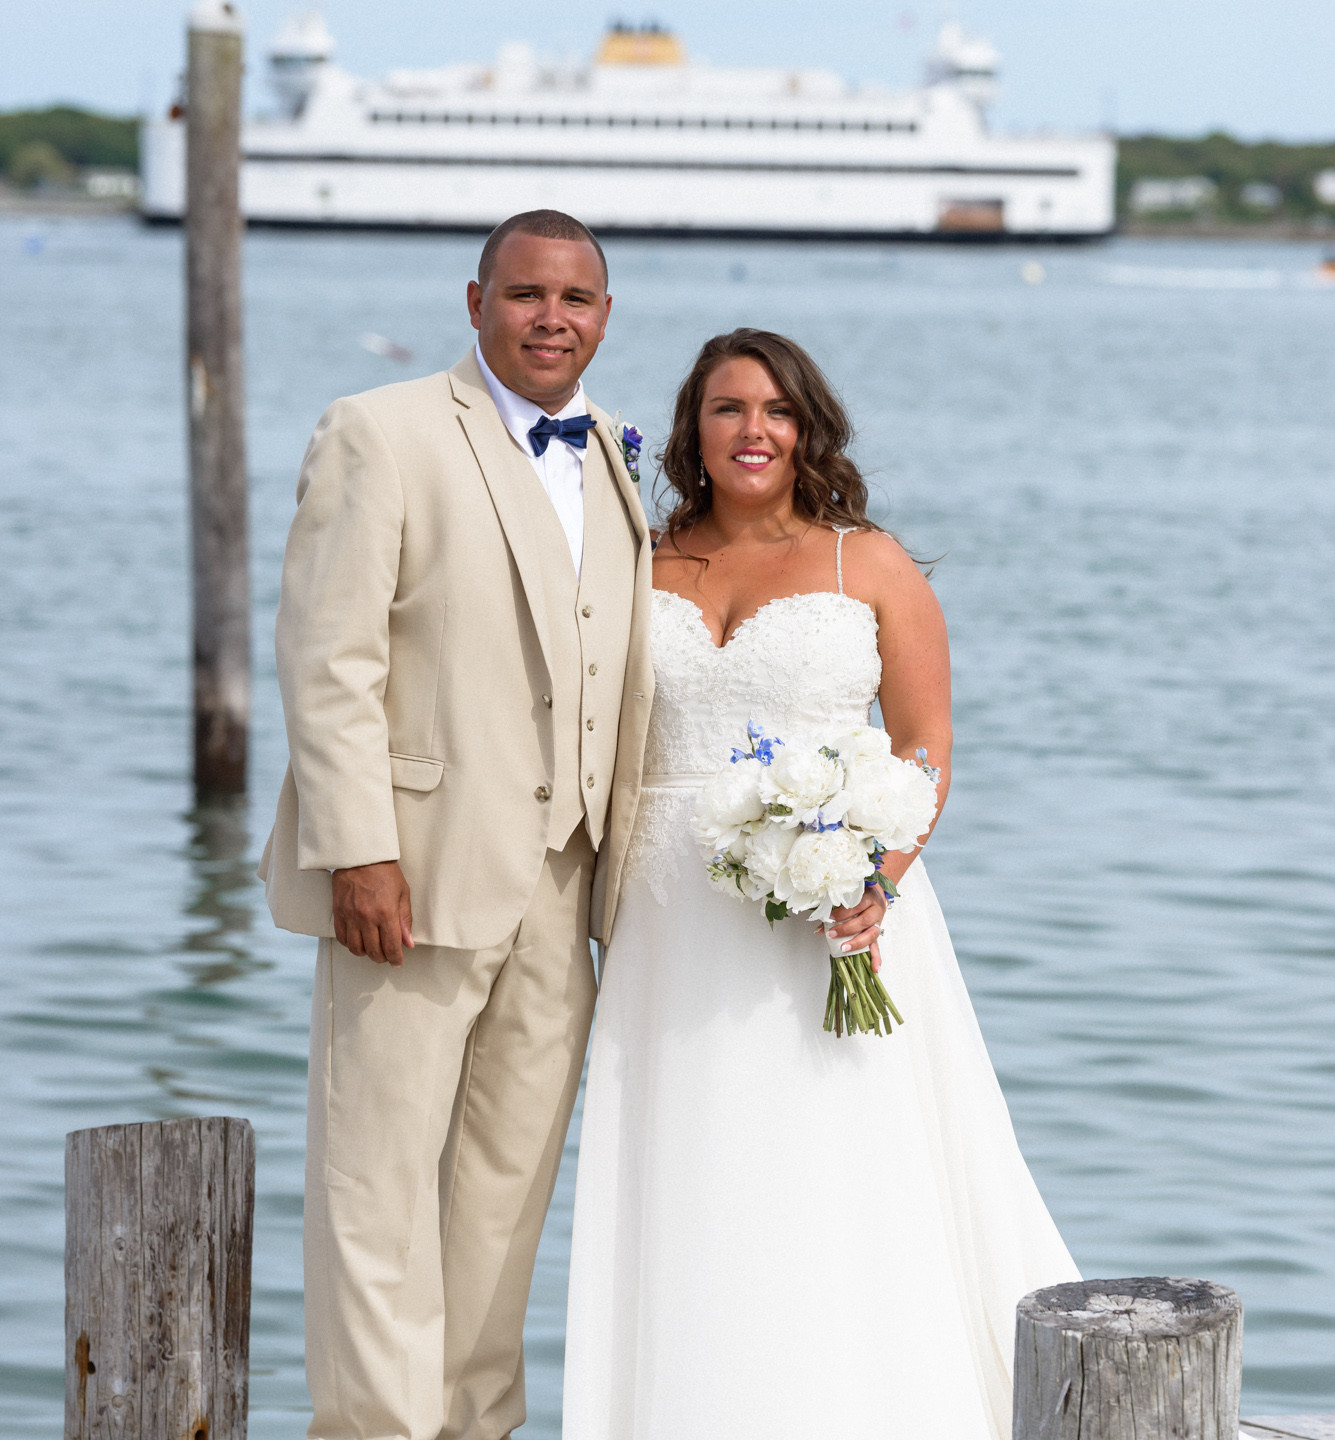 A bride and groom pose for a photo at the Vineyard Haven Yacht Club photo by David Welch Photography